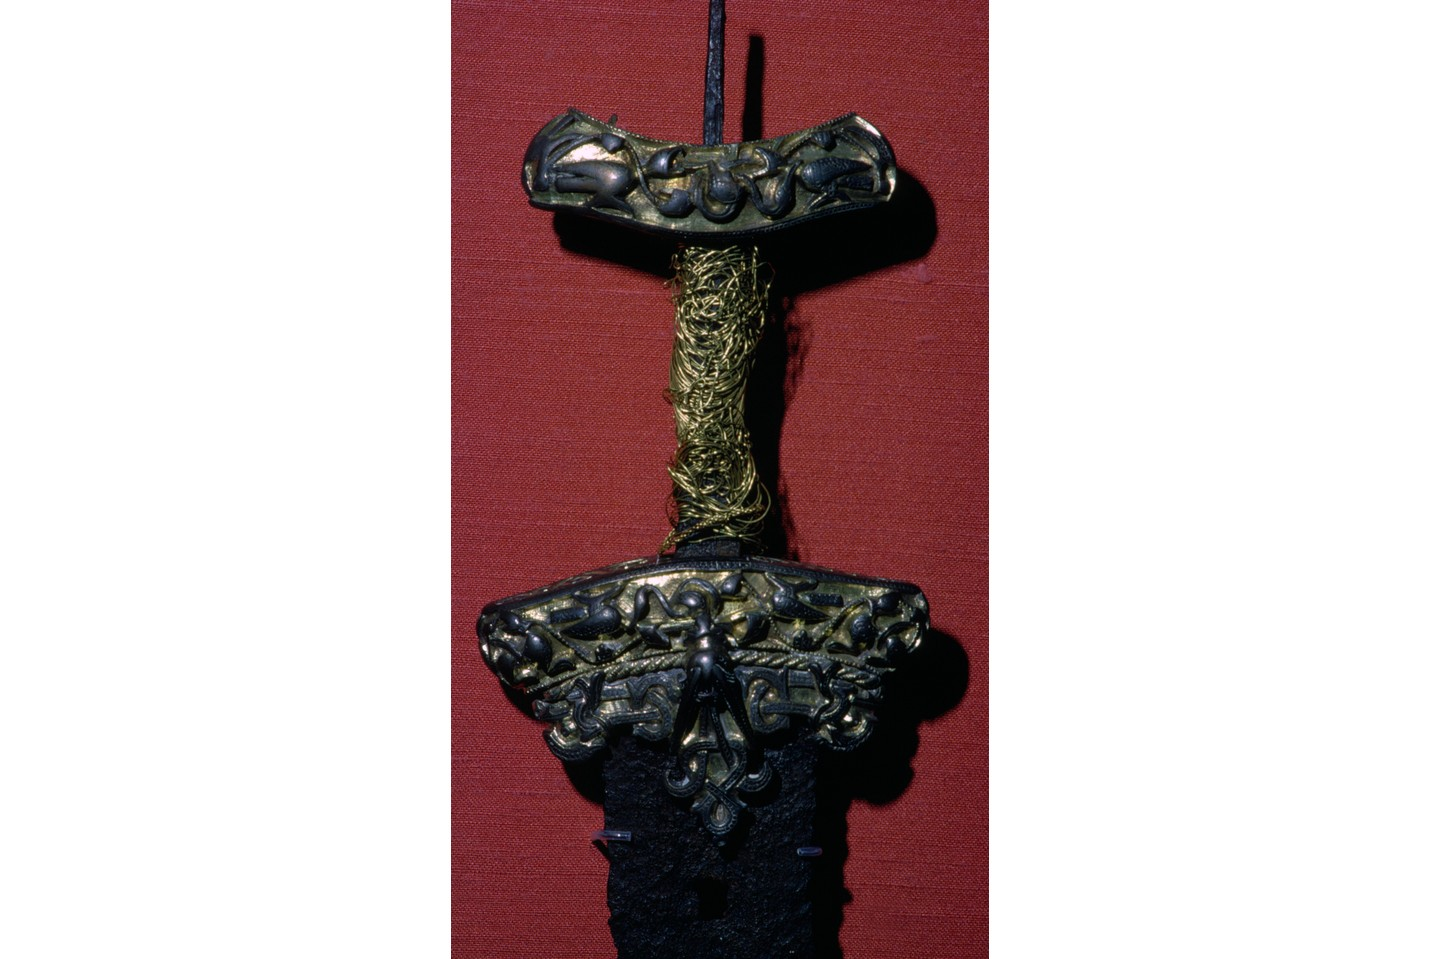 Viking sword with silver and gold hilt, from Dyback, Skane. One of the finest swords of the Viking Age found in Scandinavia, this was either made in England or heavily influenced by English styles in work, being the Winchester style of metalwork, 8th-11th century. (Photo by CM Dixon/Print Collector/Getty Images)